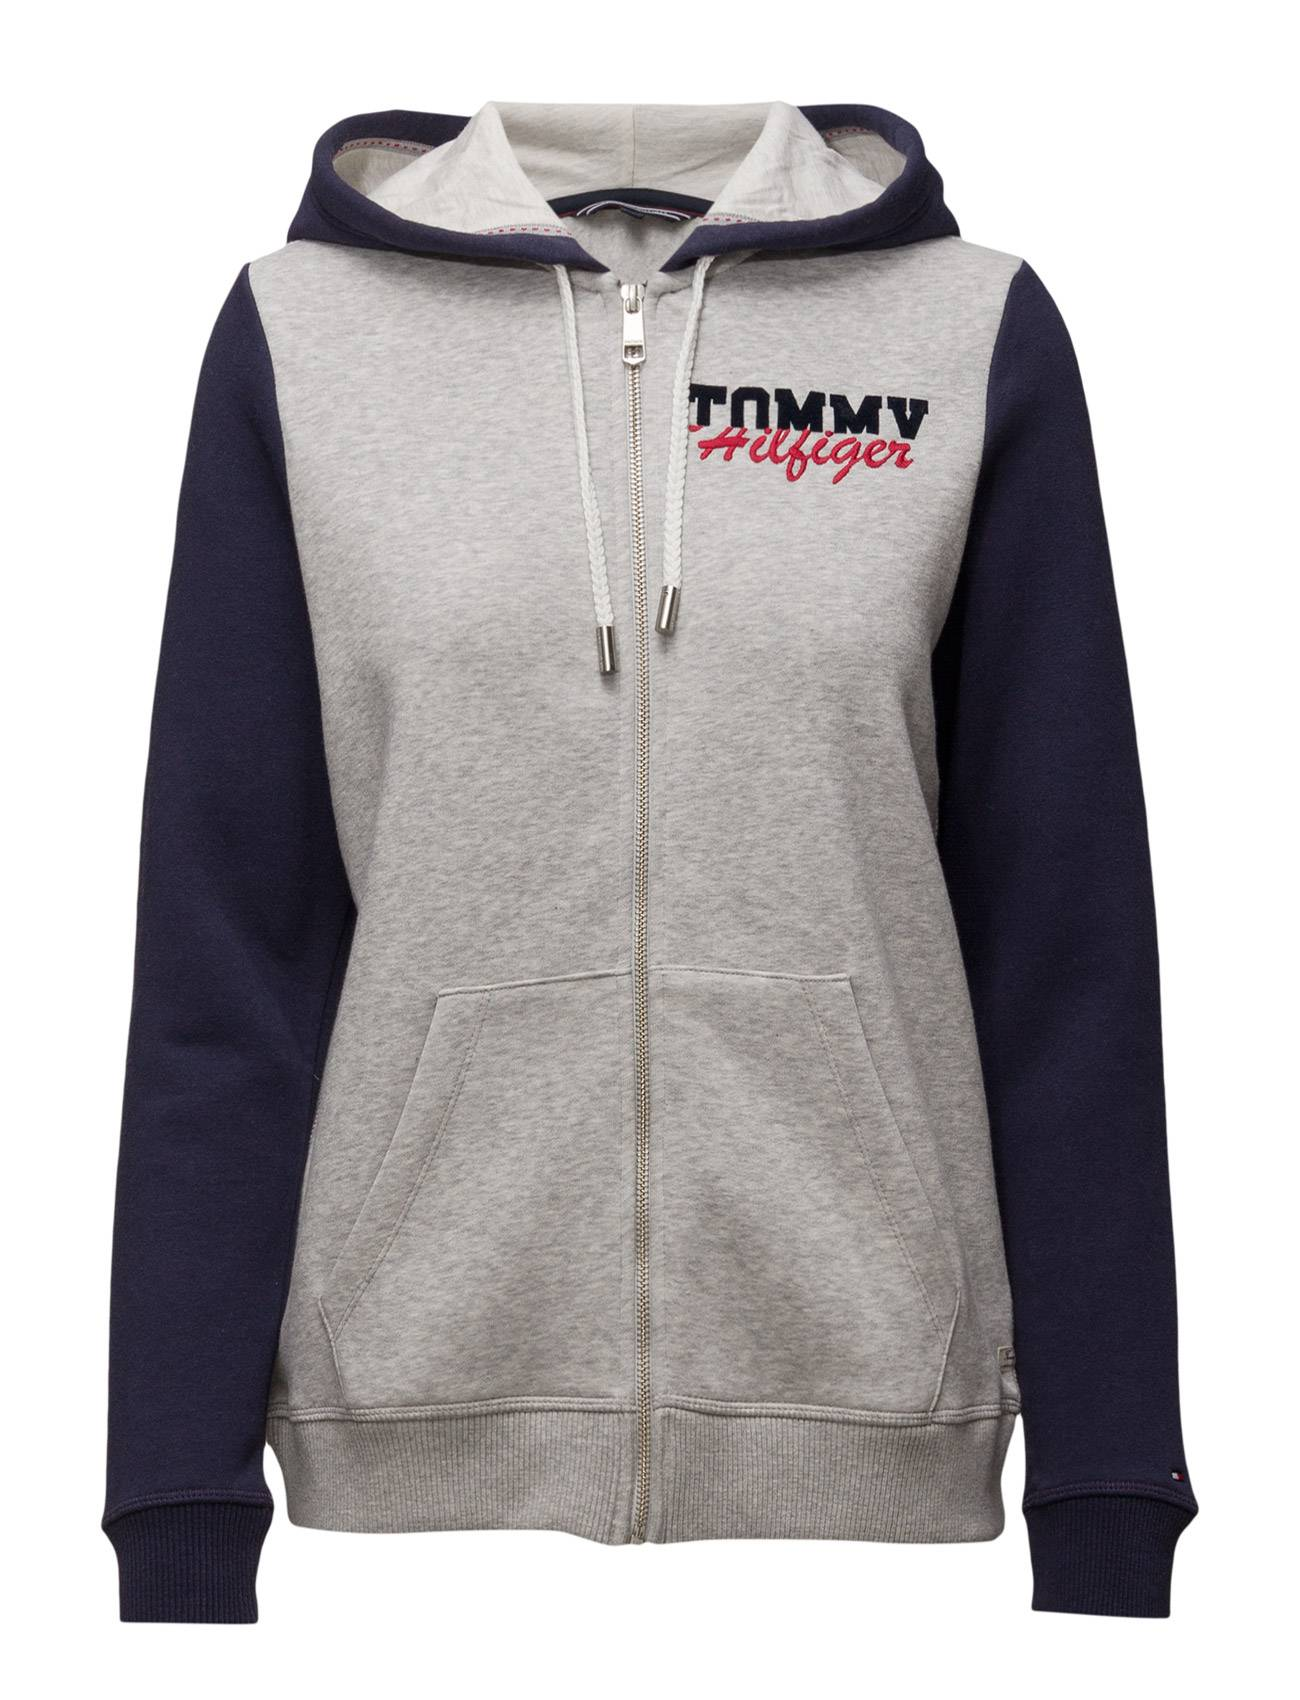 Tommy Hilfiger Sapphire Hooded Top Ls